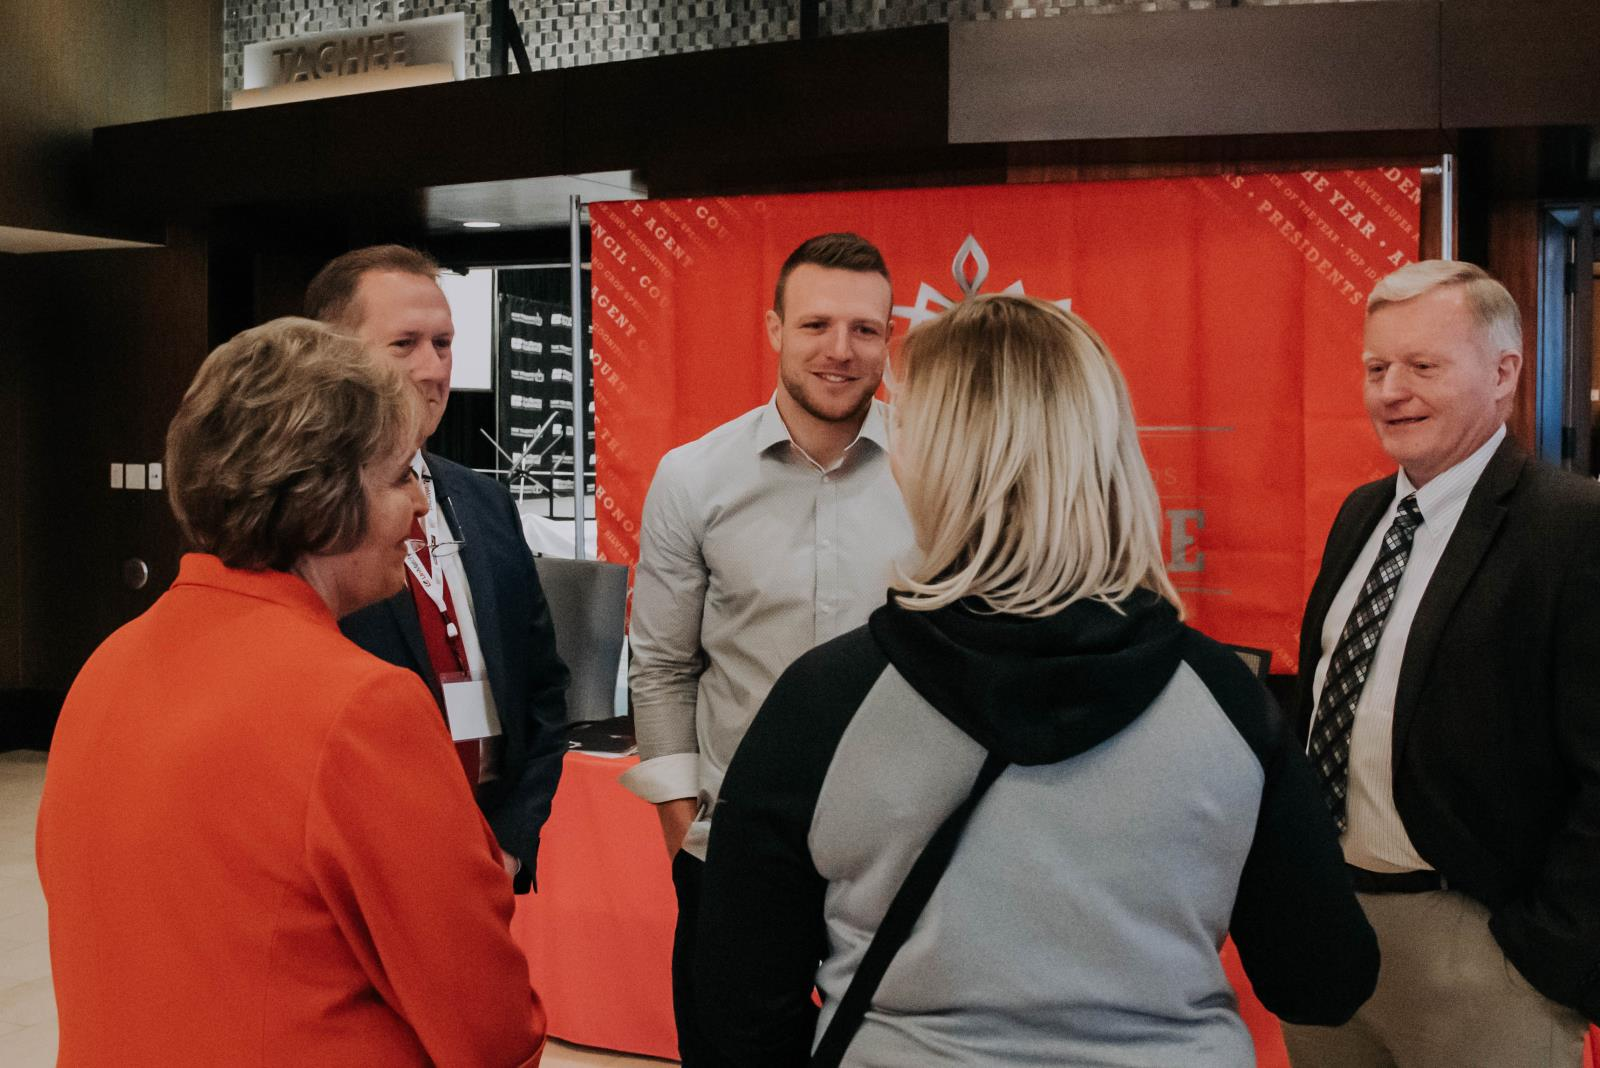 Pocatello native and NFL player Taysom Hill, center, speaks to Farm Bureau Mutual Insurance Co. of Idaho insurance agents in February. Hill is teaming up with the Idaho Potato Commission to help promote the state's most famous commodity.